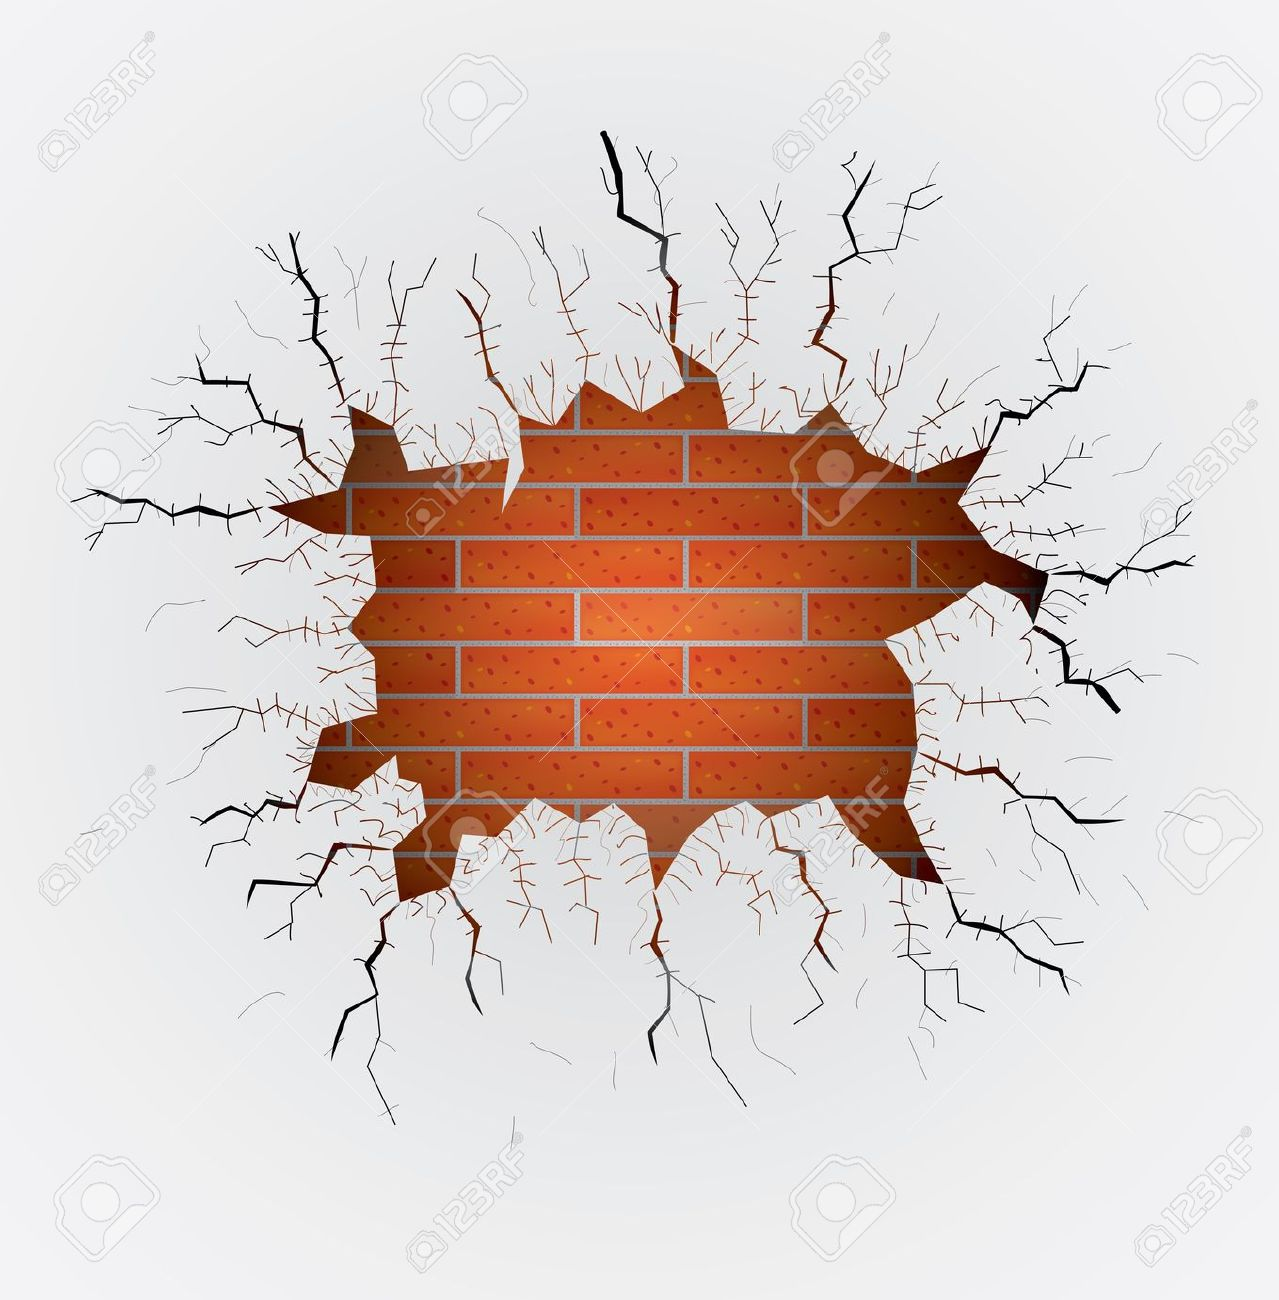 Broken wall clipart.